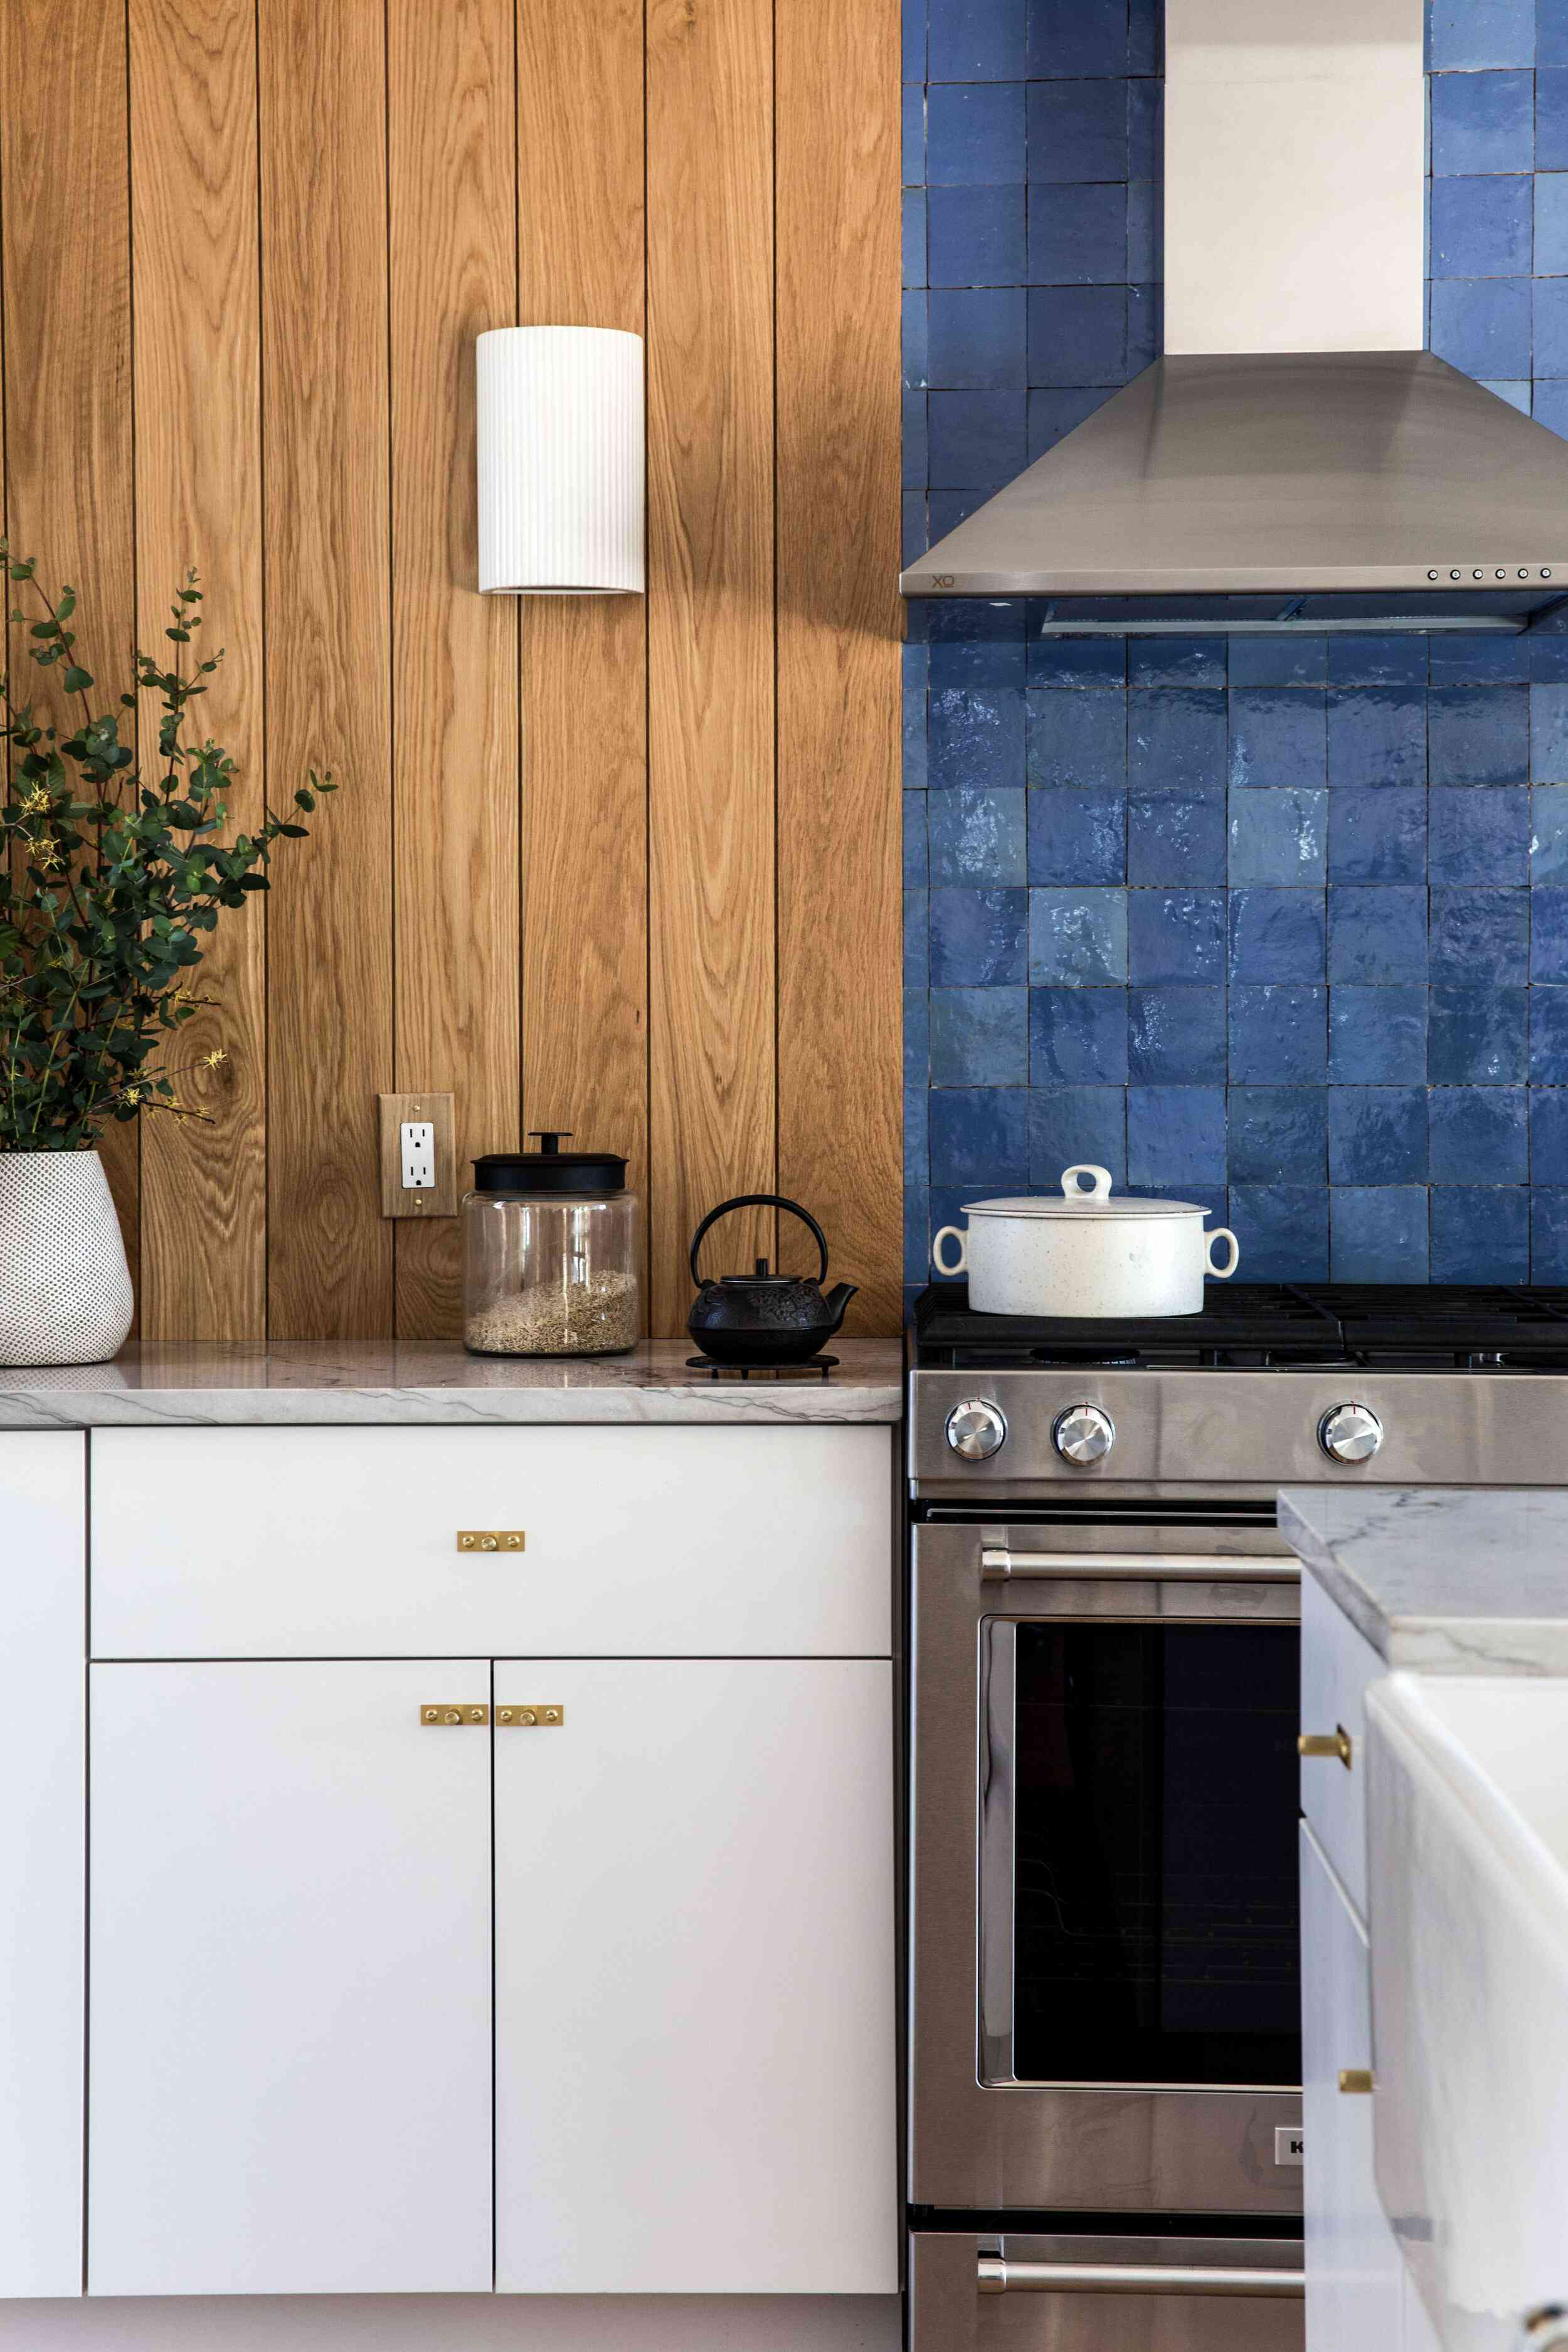 A kitchen with wood-lined walls and a blue tiled backsplash